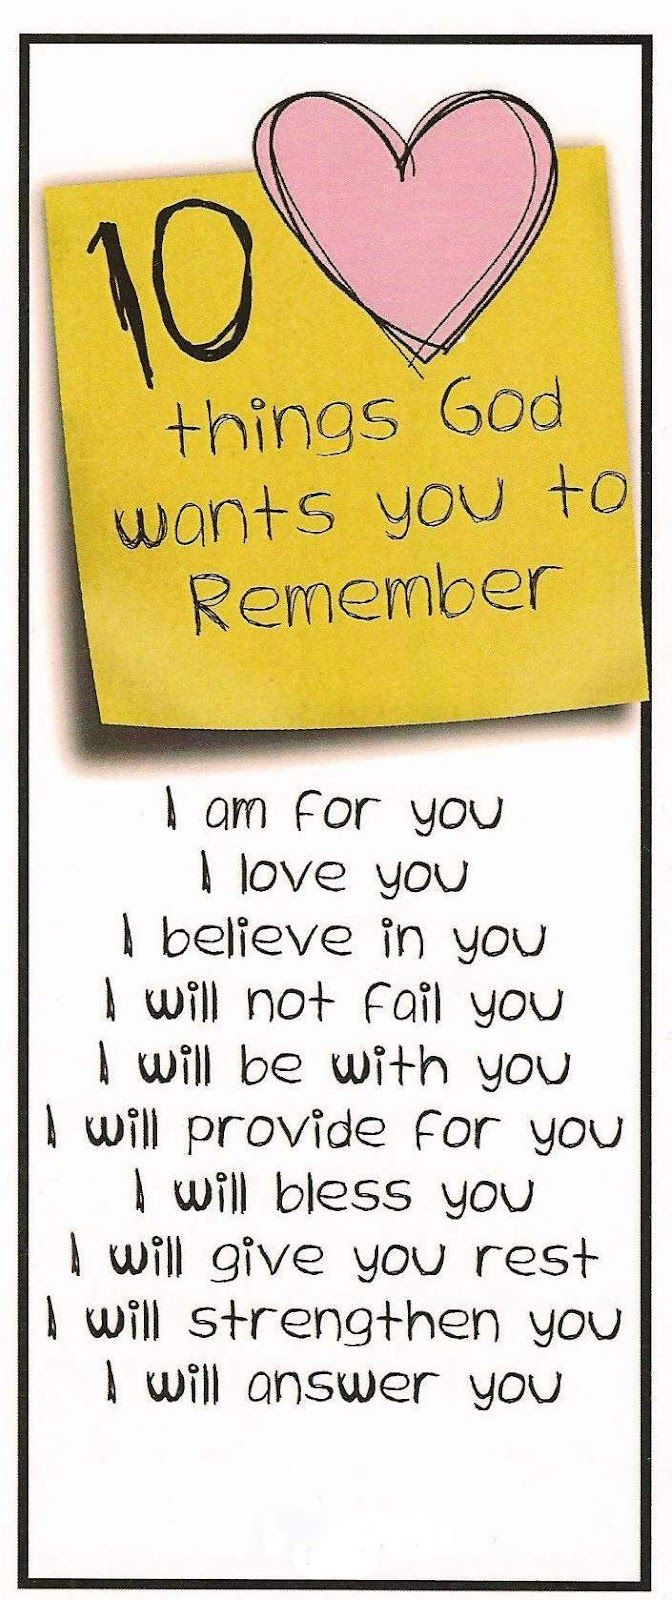 314 best palanca images on pinterest church crafts church ideas god wants you to remember altavistaventures Image collections